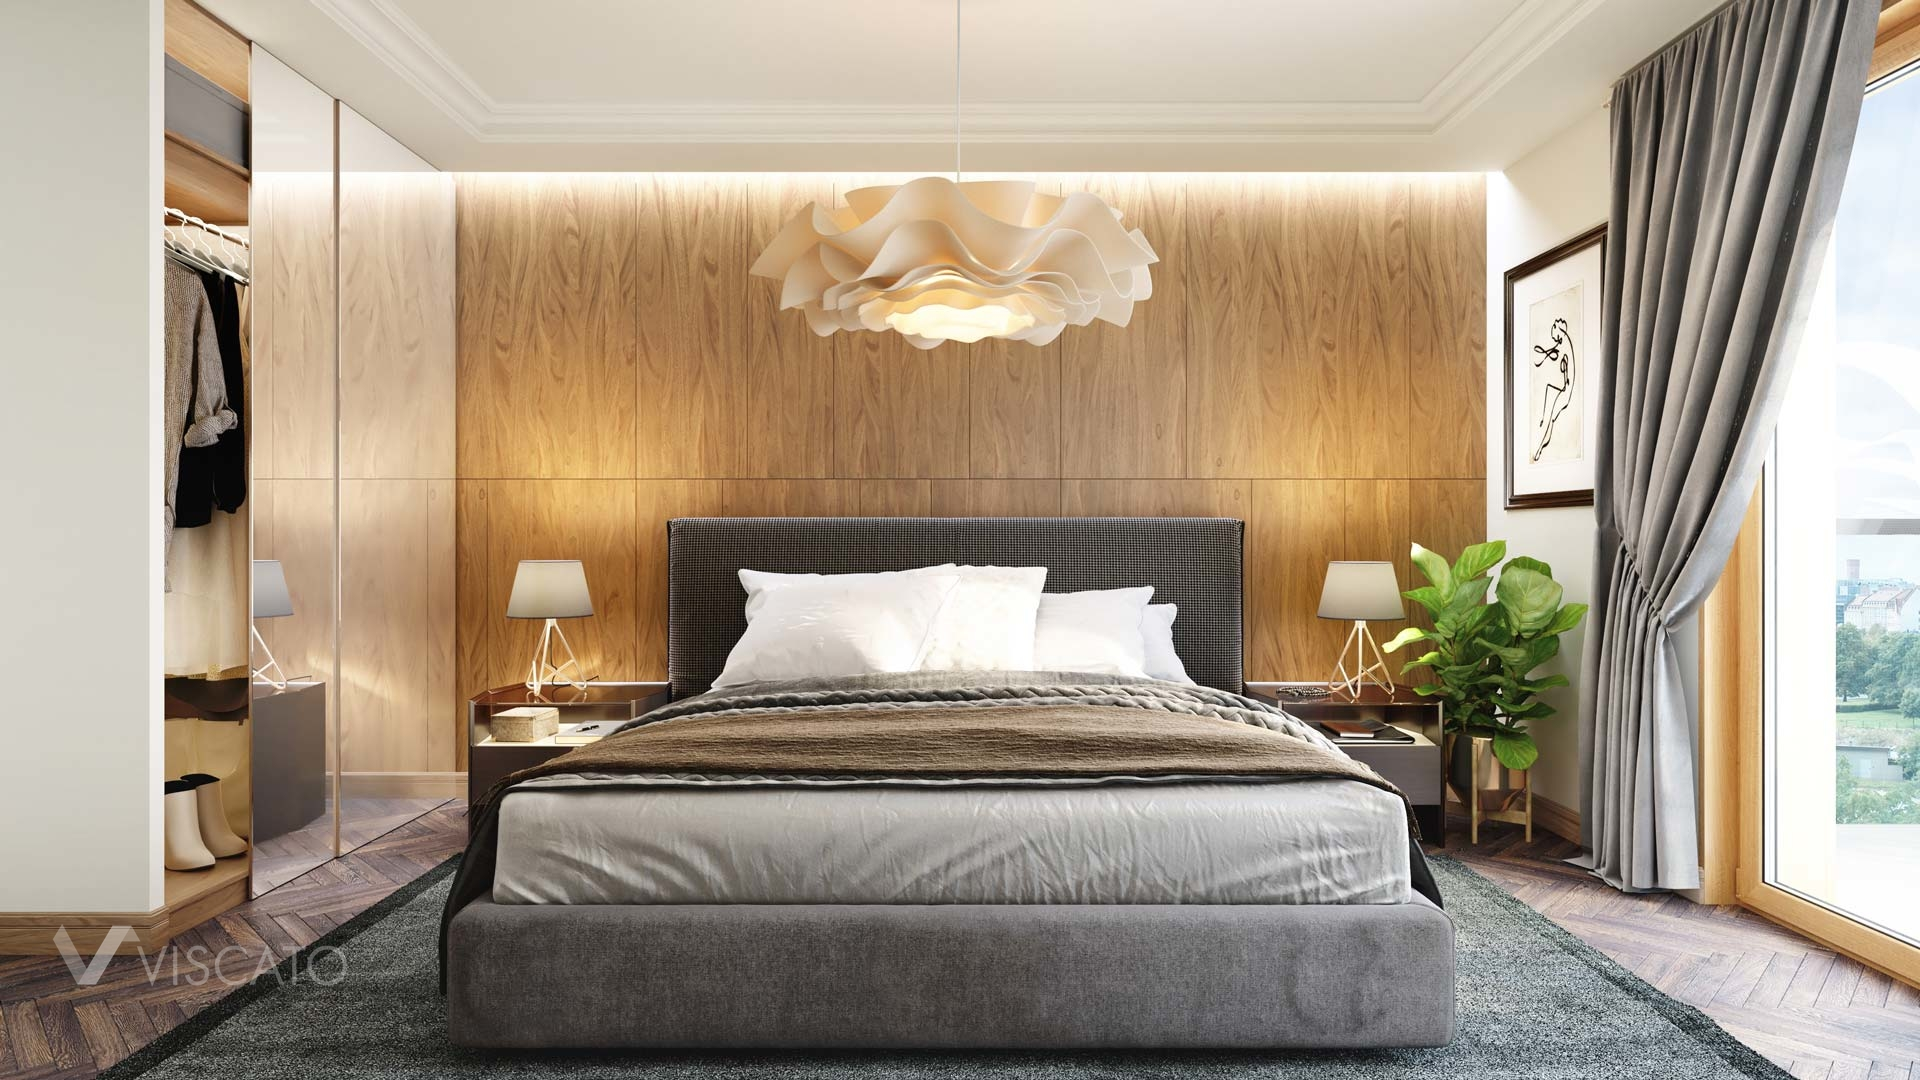 Luxurious bedroom in 3D, Viscato